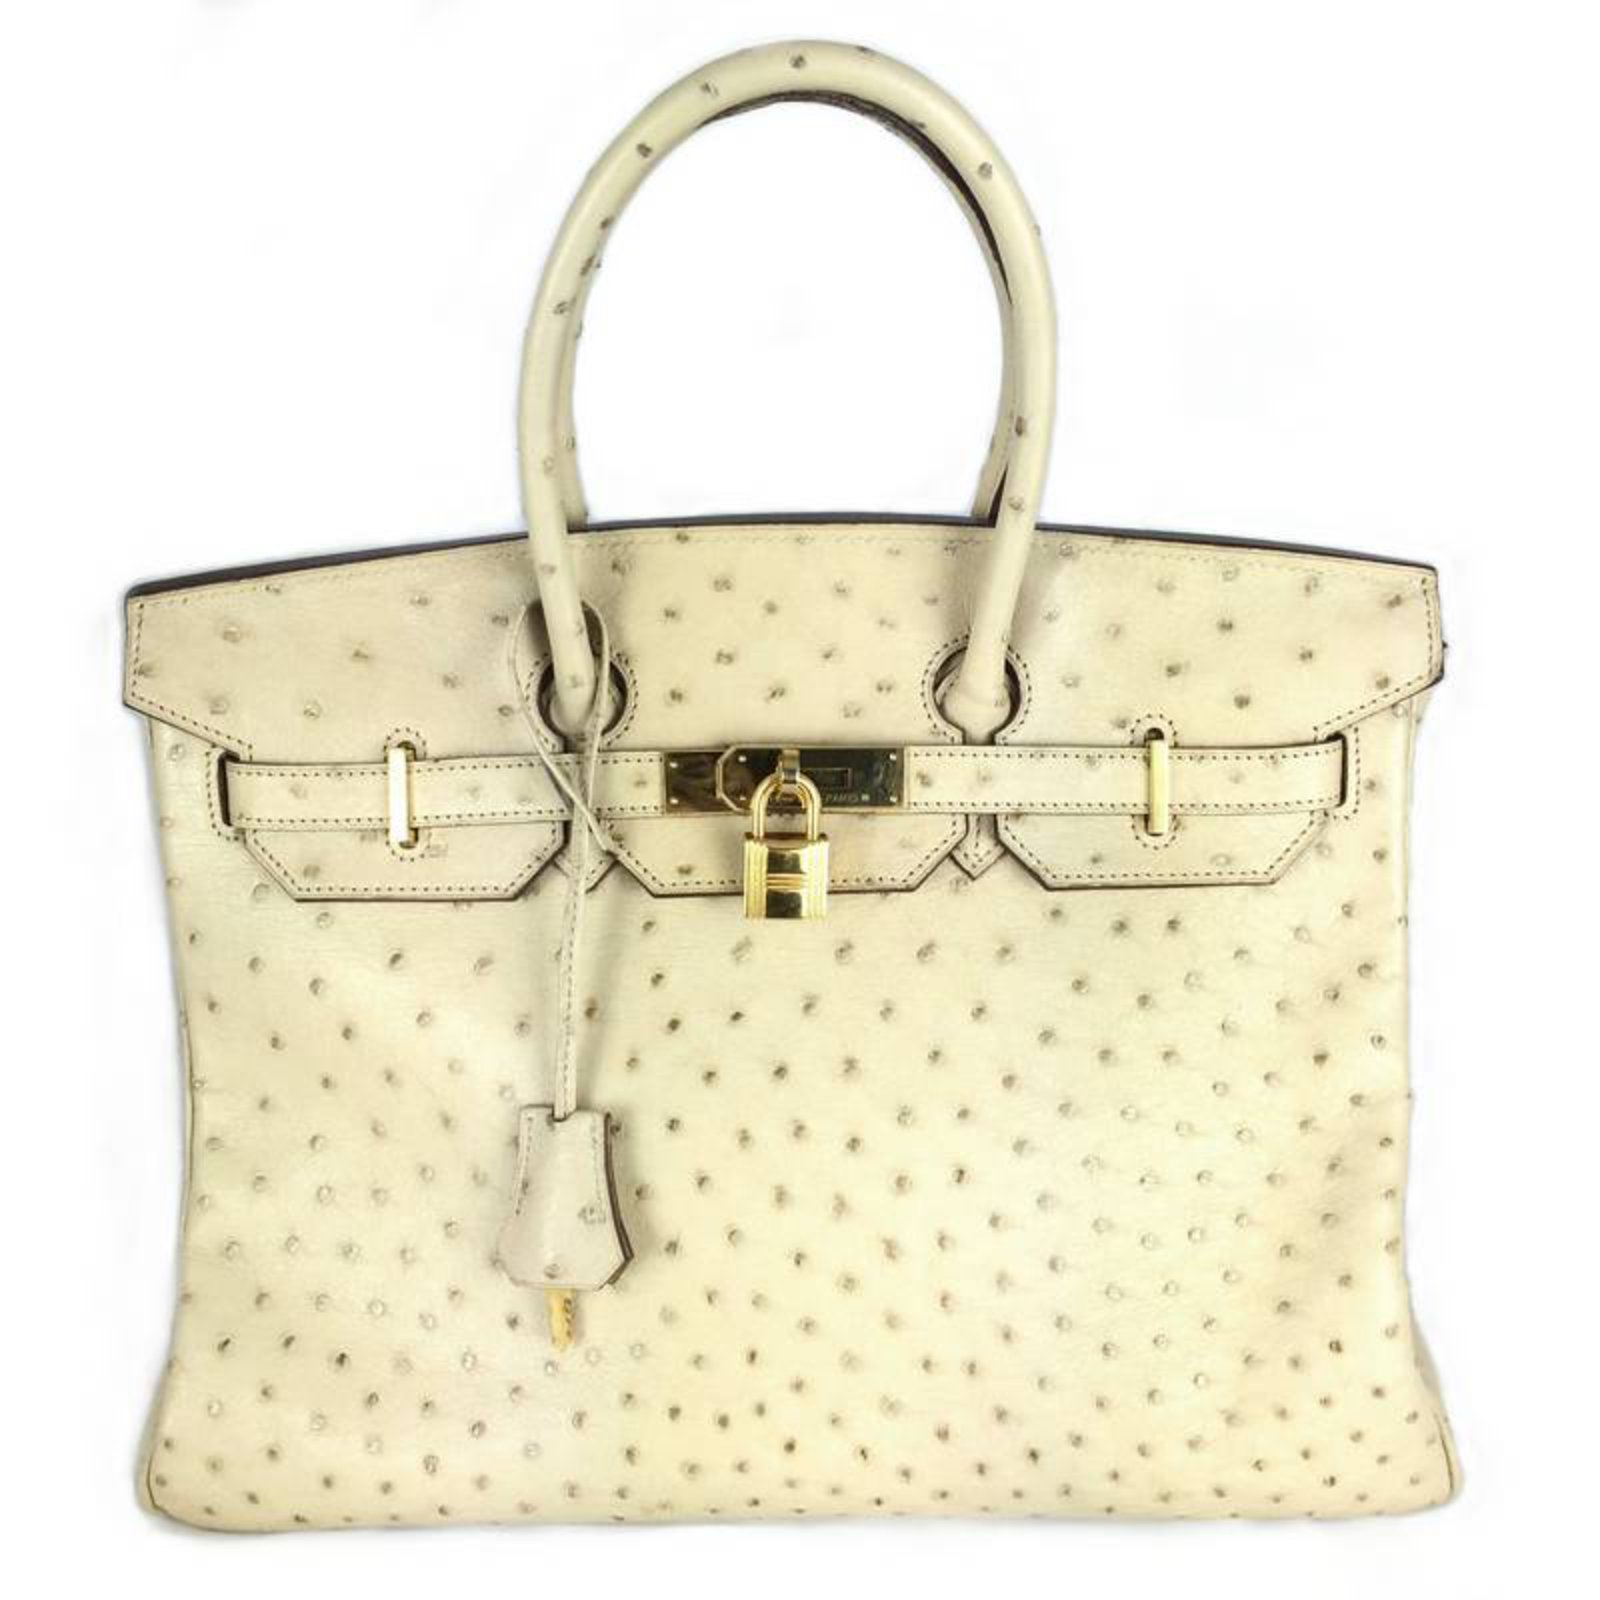 1436ebe45c41 ... best price hermès birkin 35 ostrich parchemin handbags exotic leather  beige ref.22292 9f2f5 b20c7